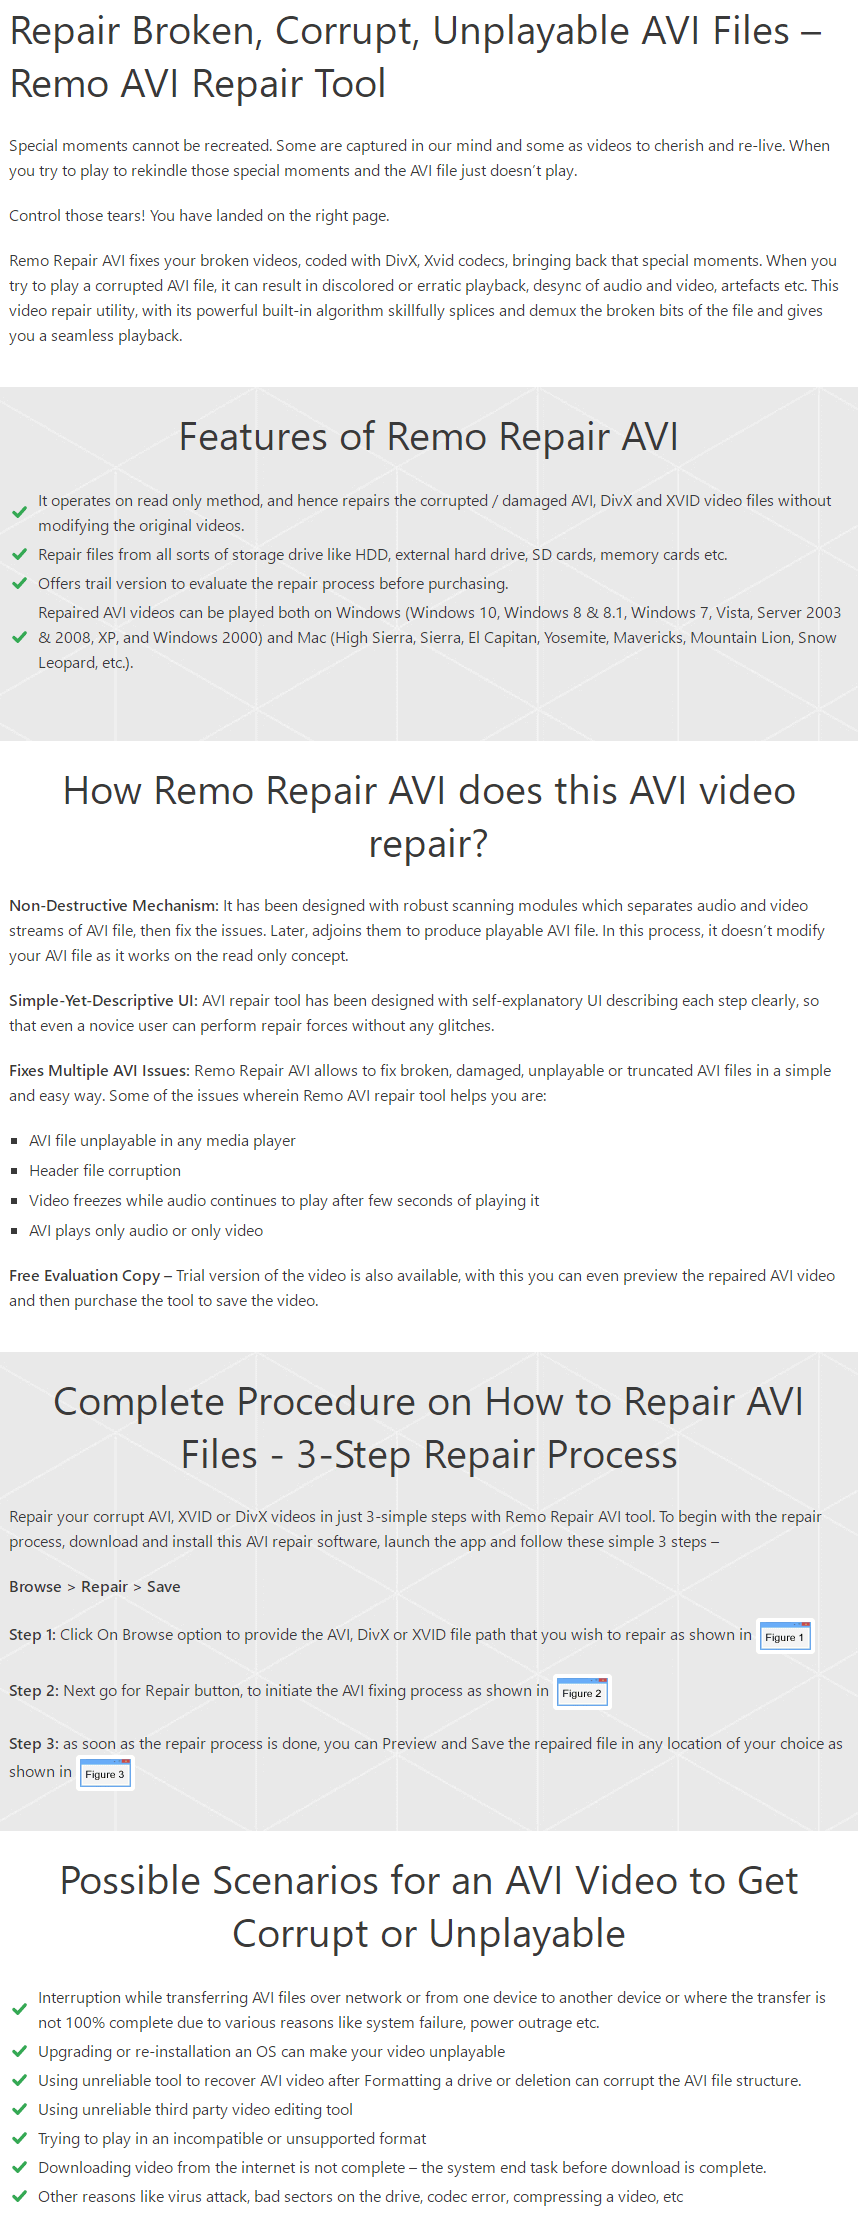 Remo Repair AVI Feature